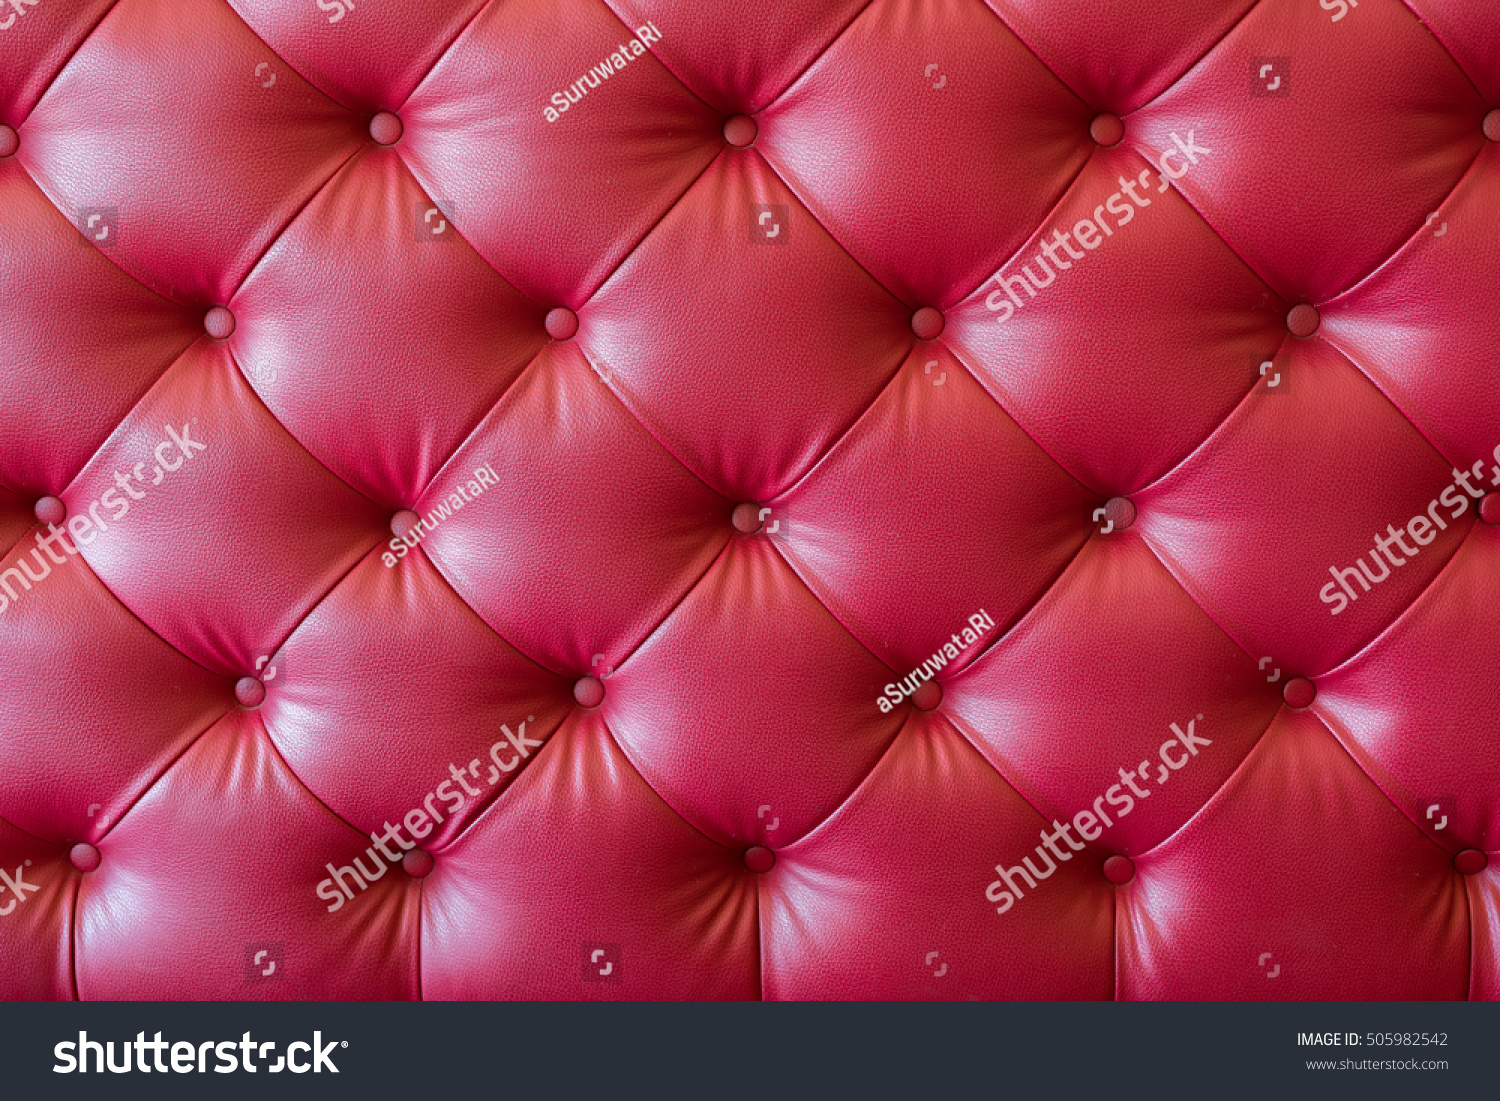 Retro Inflatable Sofa Vintage Red Leather Sofa Texture Background Stock Photo Edit Now